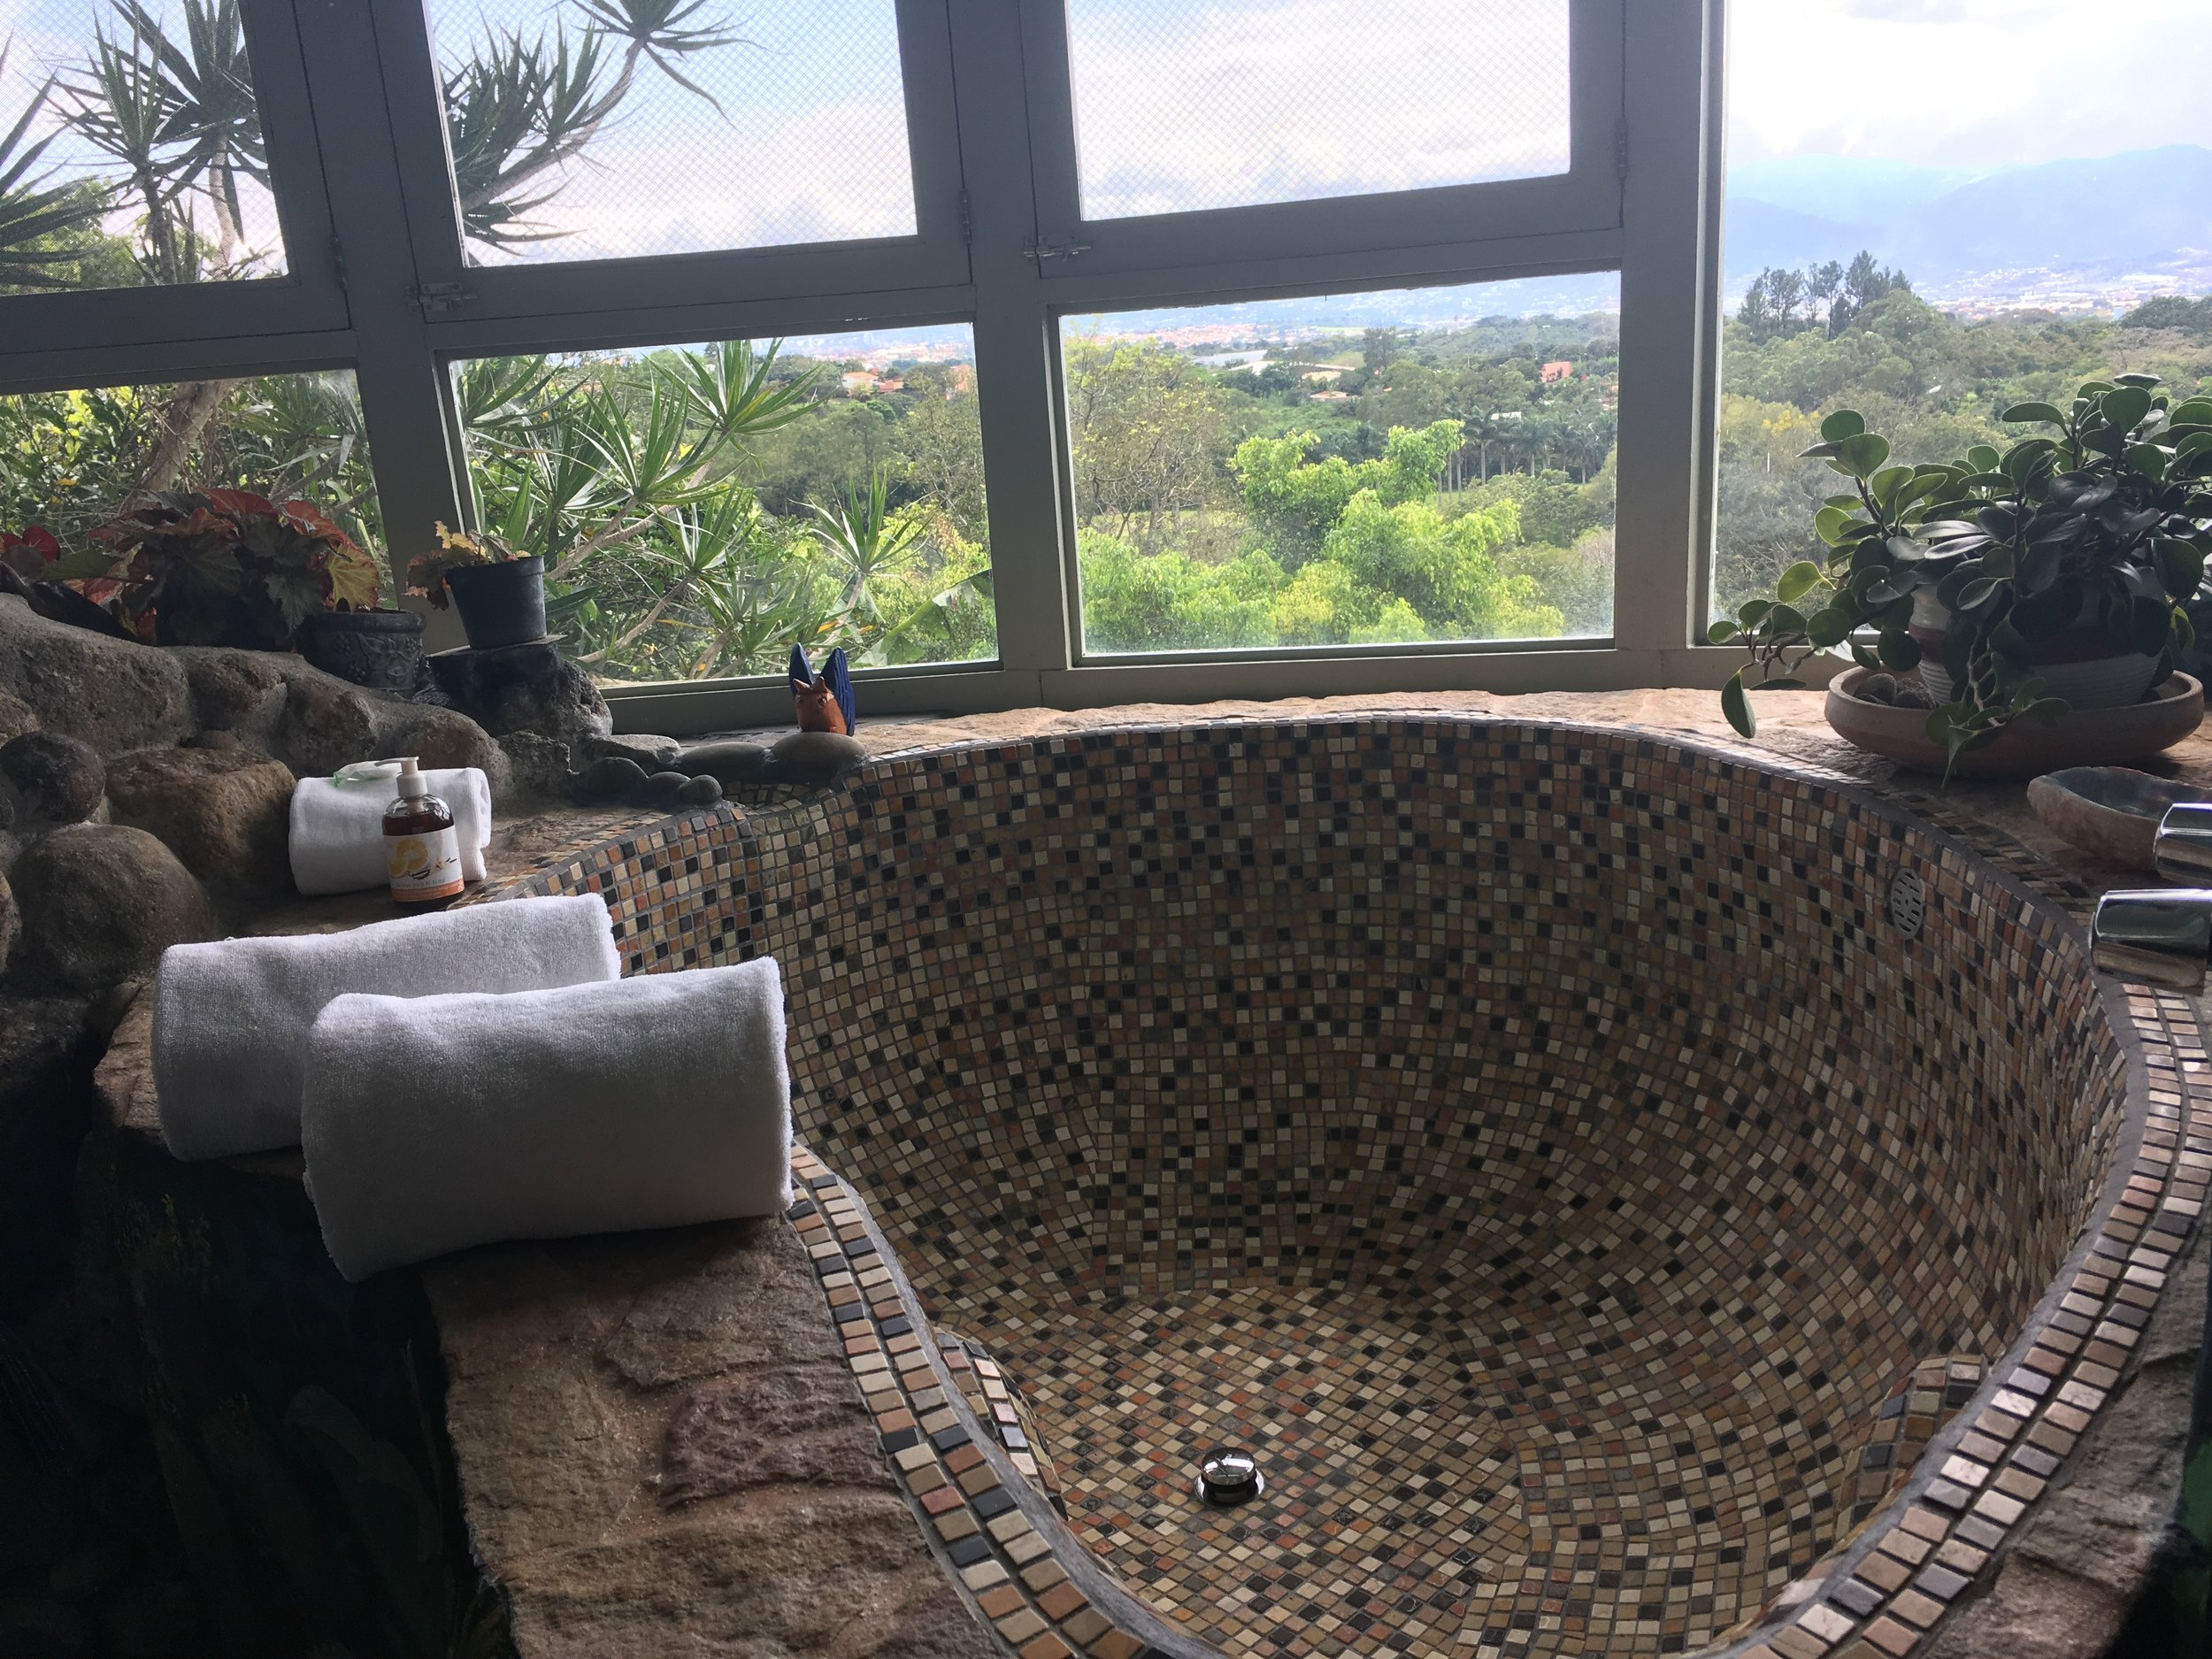 The most amazing tub I have ever seen!